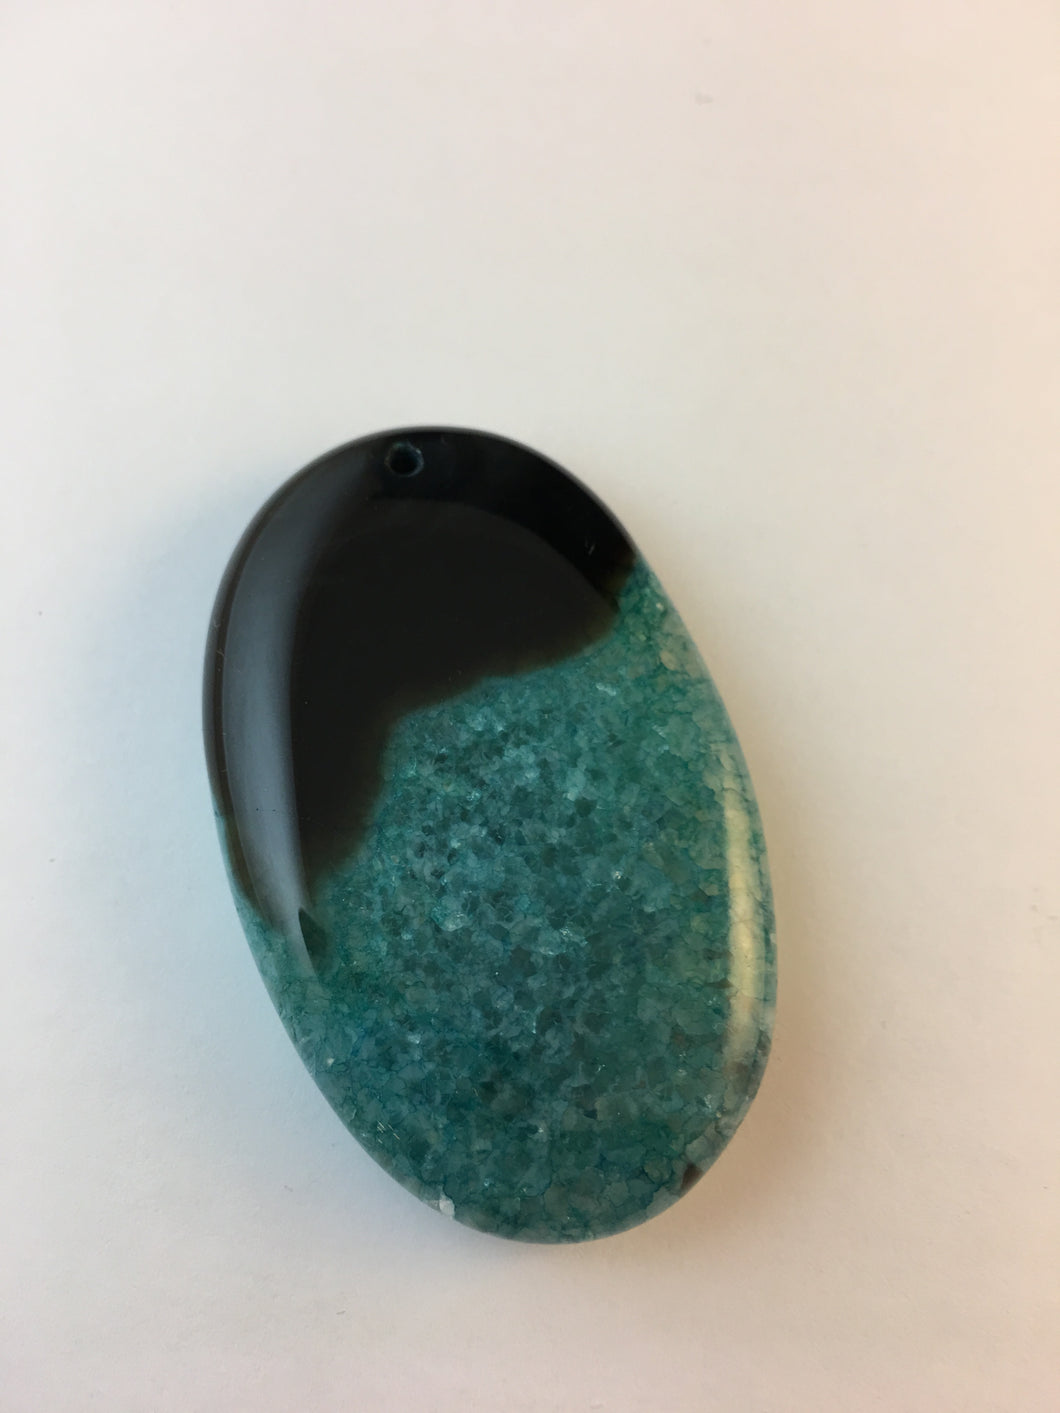 ADDISON - Two Tone Black & Teal Oval Geode Agate pendant